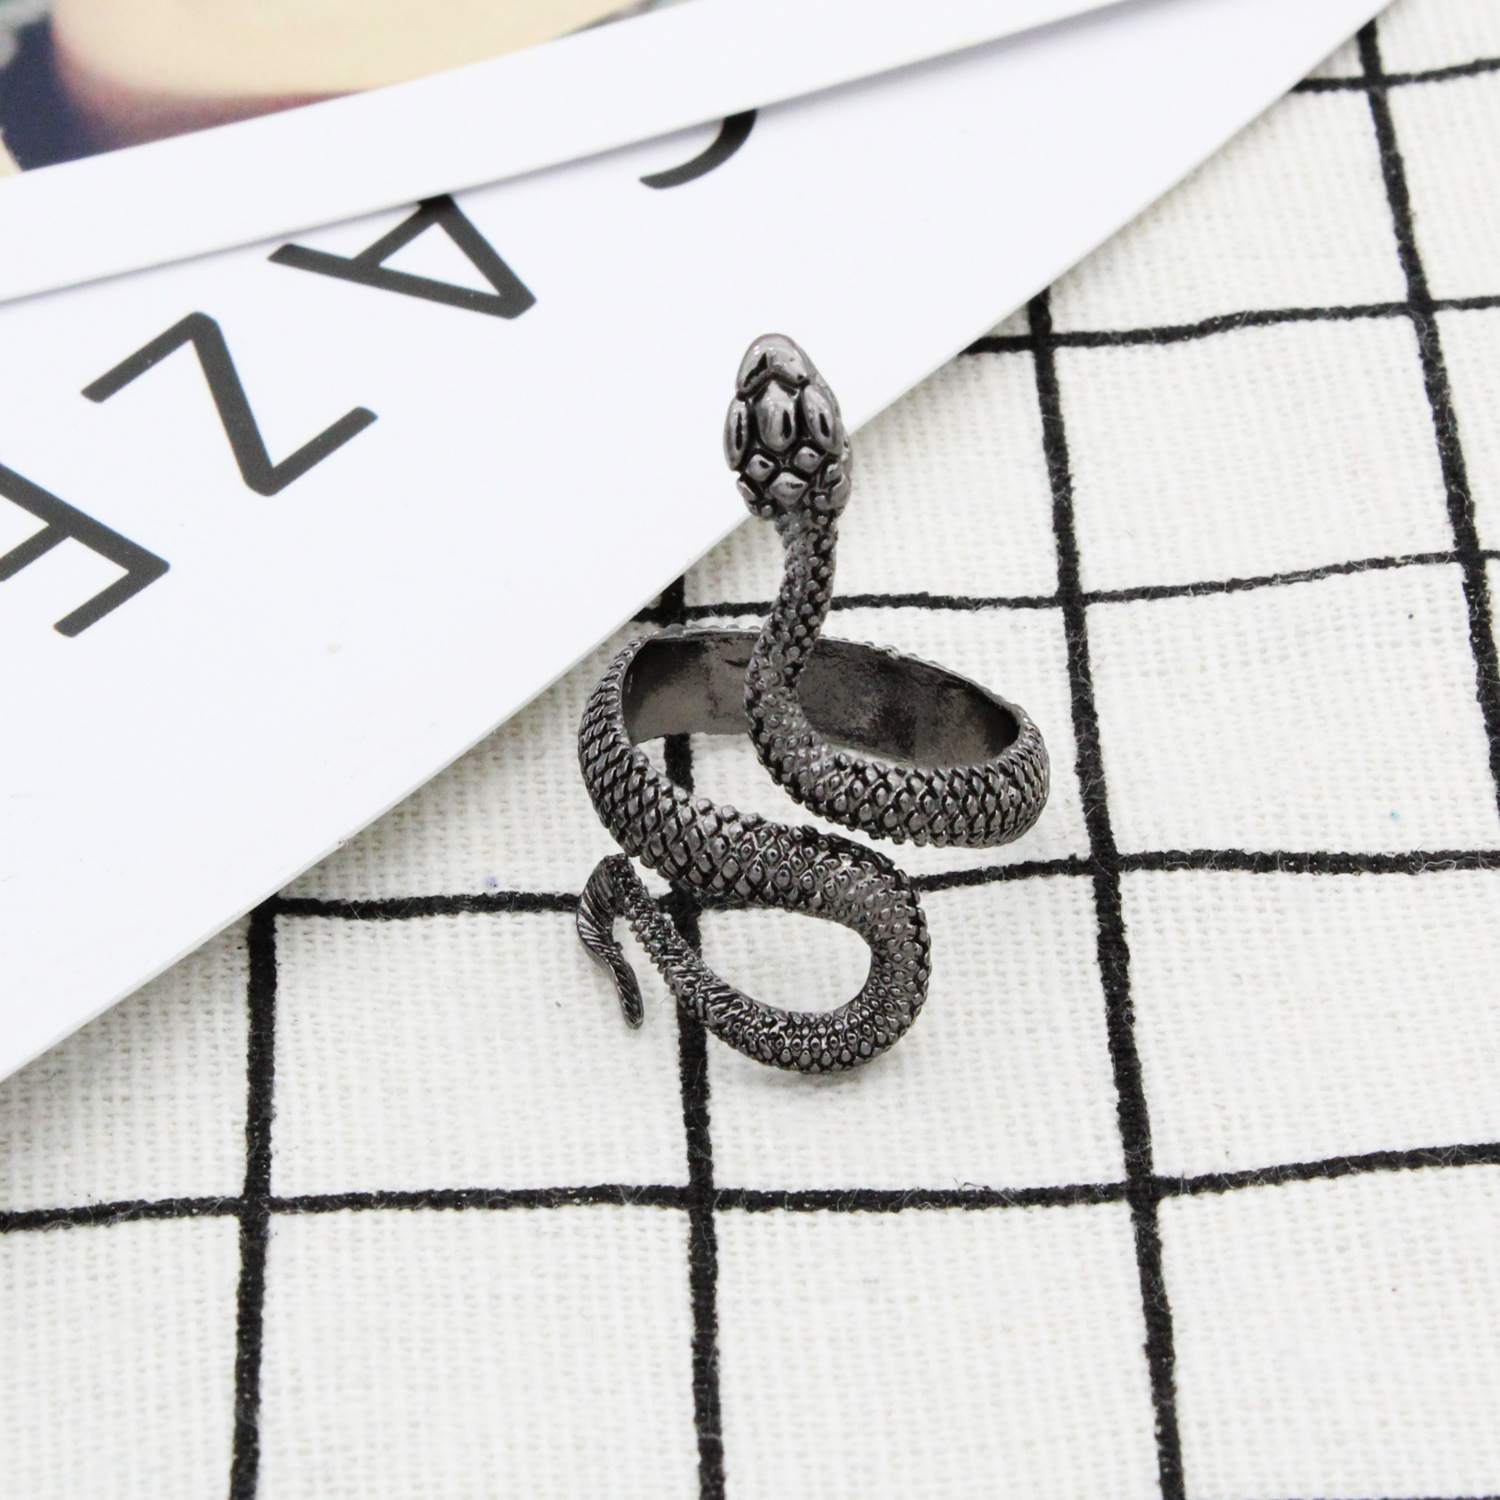 Punk Animal Ring Gothic Black Silver Metal Snake Rings For Women Men Night Club Unisex Adjustable Anillos Jewelry Drop Shipping in Rings from Jewelry Accessories